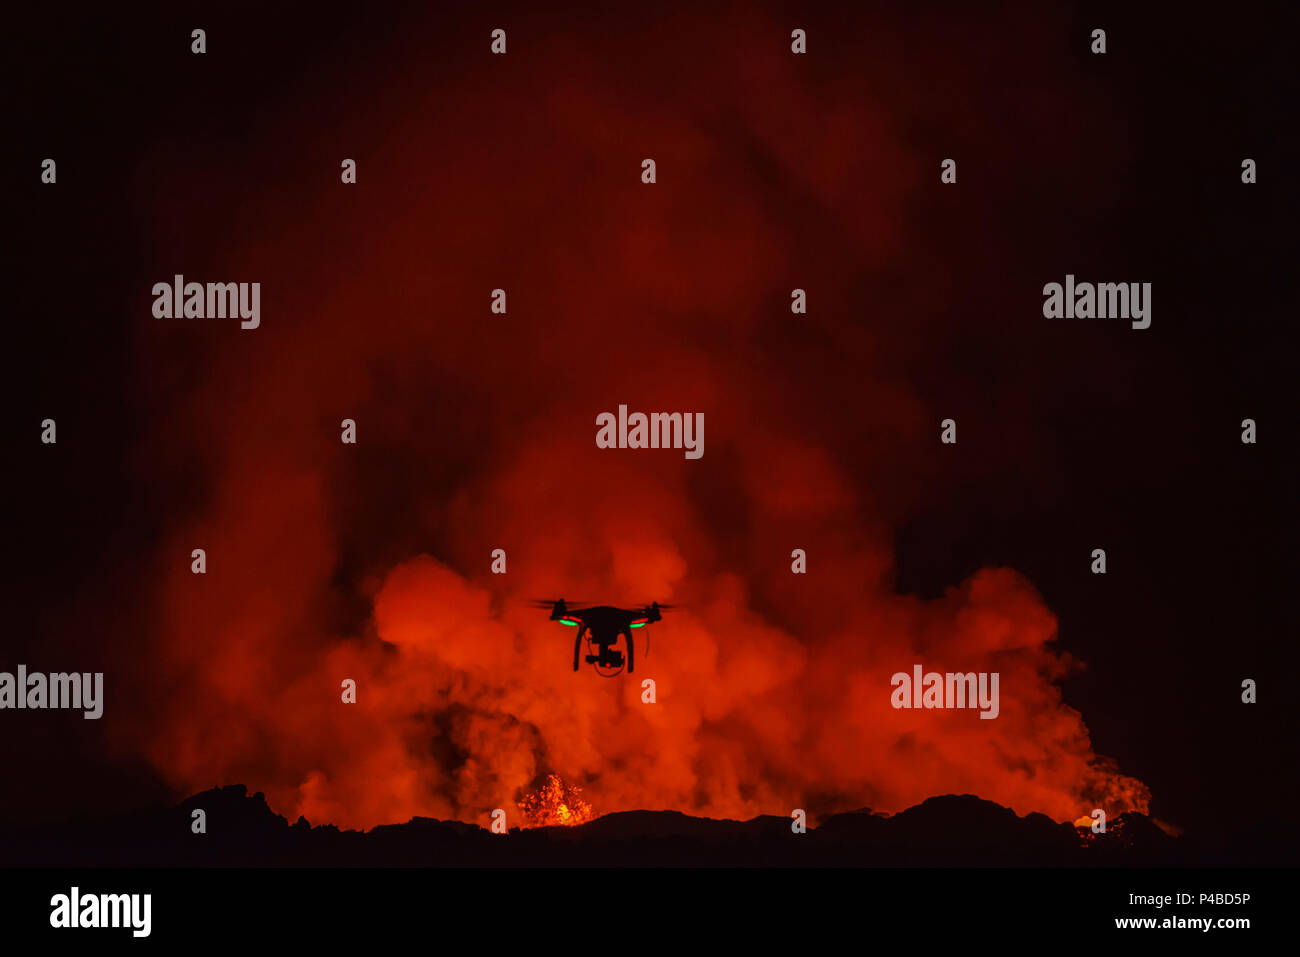 DJI Phantom 2 with GoPro, flying by the Holuhraun Fissure Eruption. August 29, 2014 a fissure eruption started in Holuhraun at the northern end of a magma intrusion, which had moved progressively north, from the Bardarbunga volcano. Bardarbunga is a stratovolcano located under Vatnajokull, Iceland's most extensive glacier, picture Date Sept. 20, 2014 - Stock Image